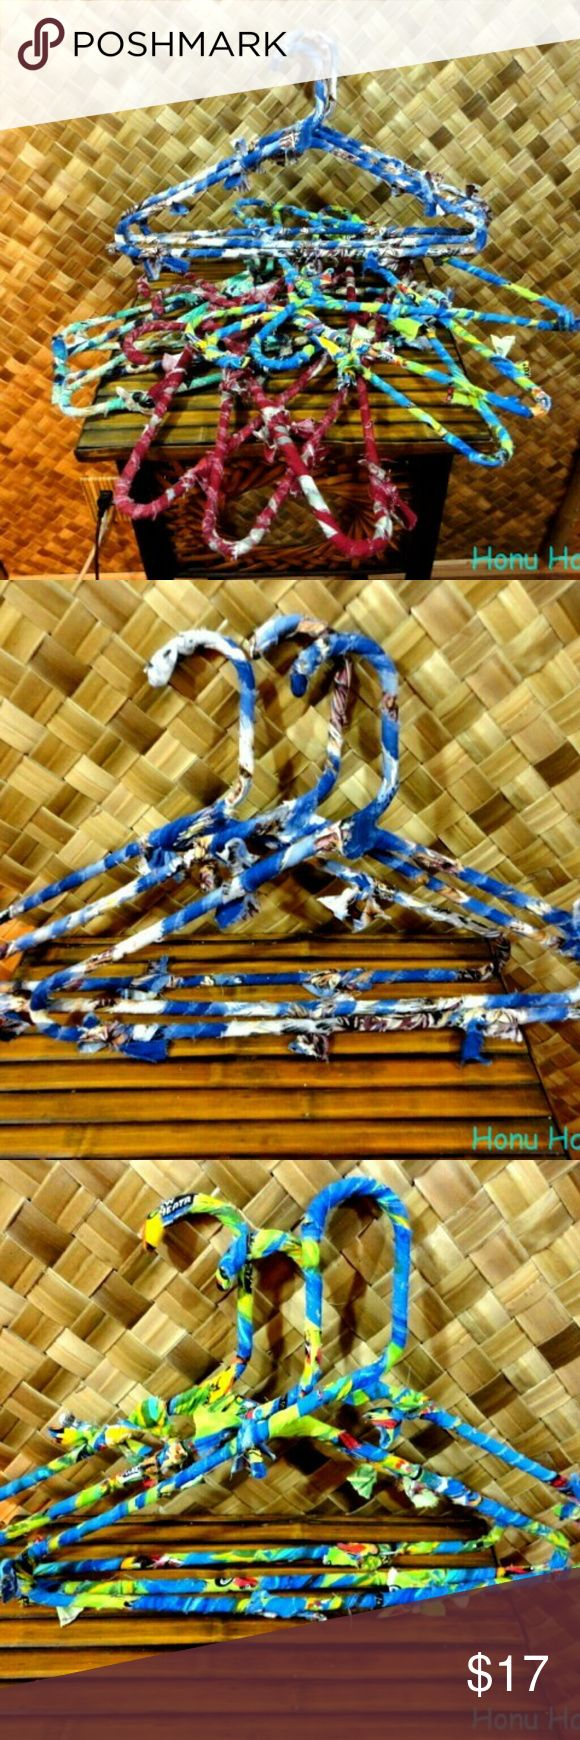 Lot of 12 - HAWAIIAN RECYCLED SHIRT RAG HANGERS Beautiful, colorful, and Recycled! This listing is for 12 ( 1 dozen ) rag wrapped hangers made from Hawaiian shirts that had damage and could not be sold to wear. These are regular adult size hangers. Benefits to these hangers are that they are made of material so your clothing won't slide off, clothing won't get rust on them like wire hangers can leave, and best of all recycled to better our planet. Hand Made Other